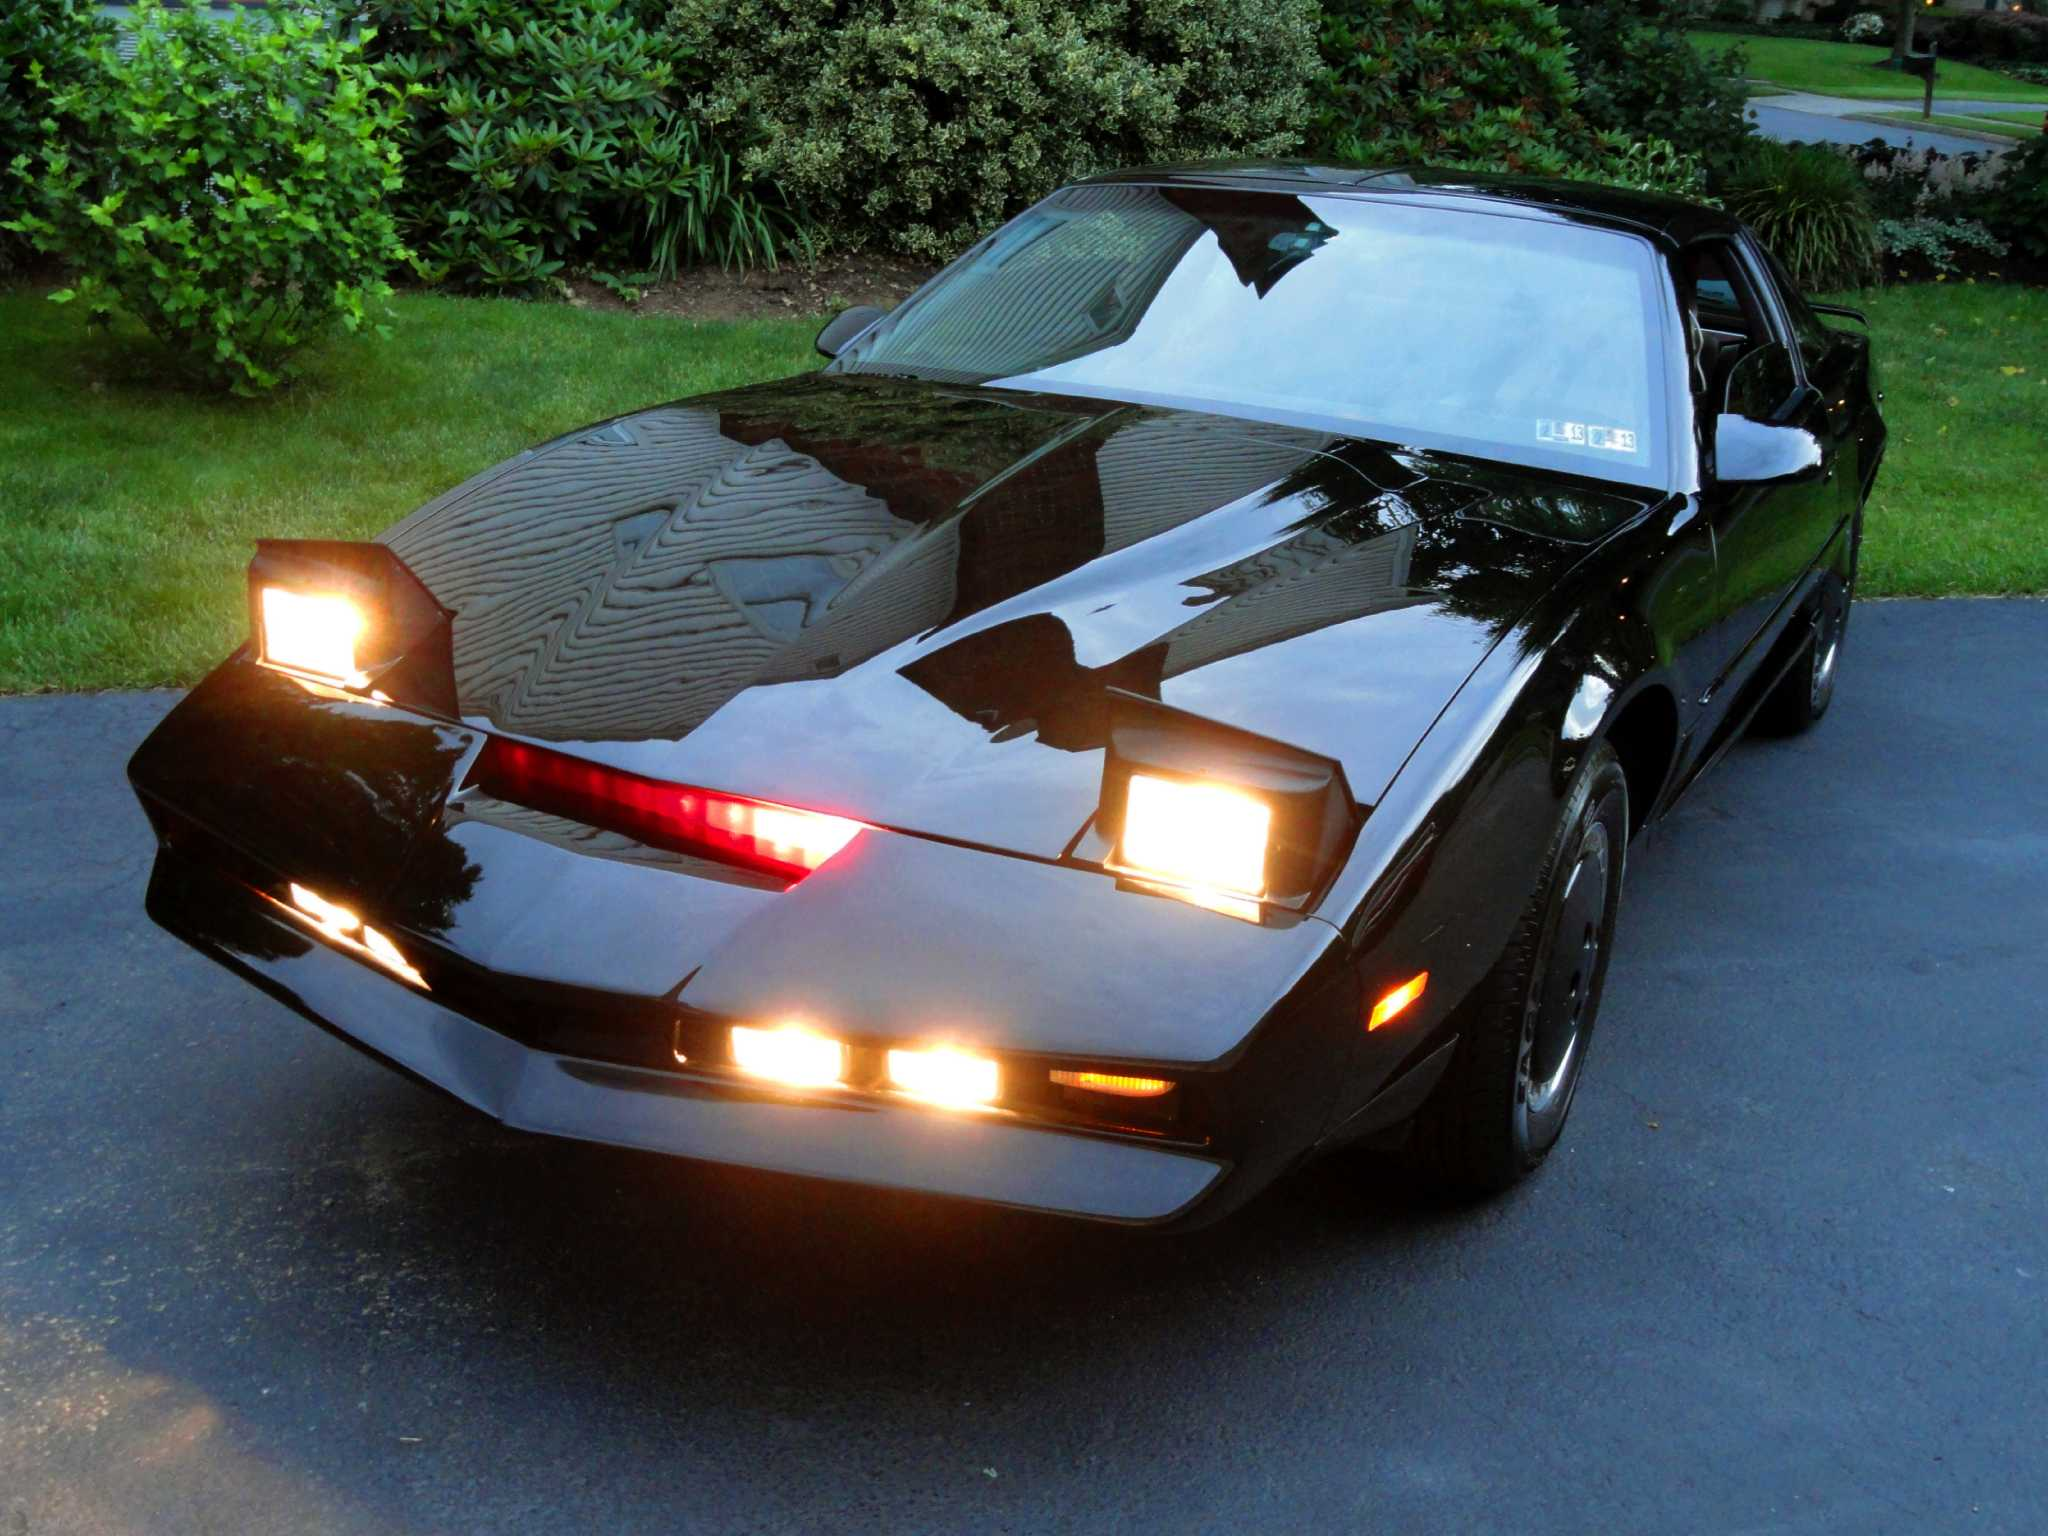 replica knight rider car up for sale on craigslist houston chronicle. Black Bedroom Furniture Sets. Home Design Ideas